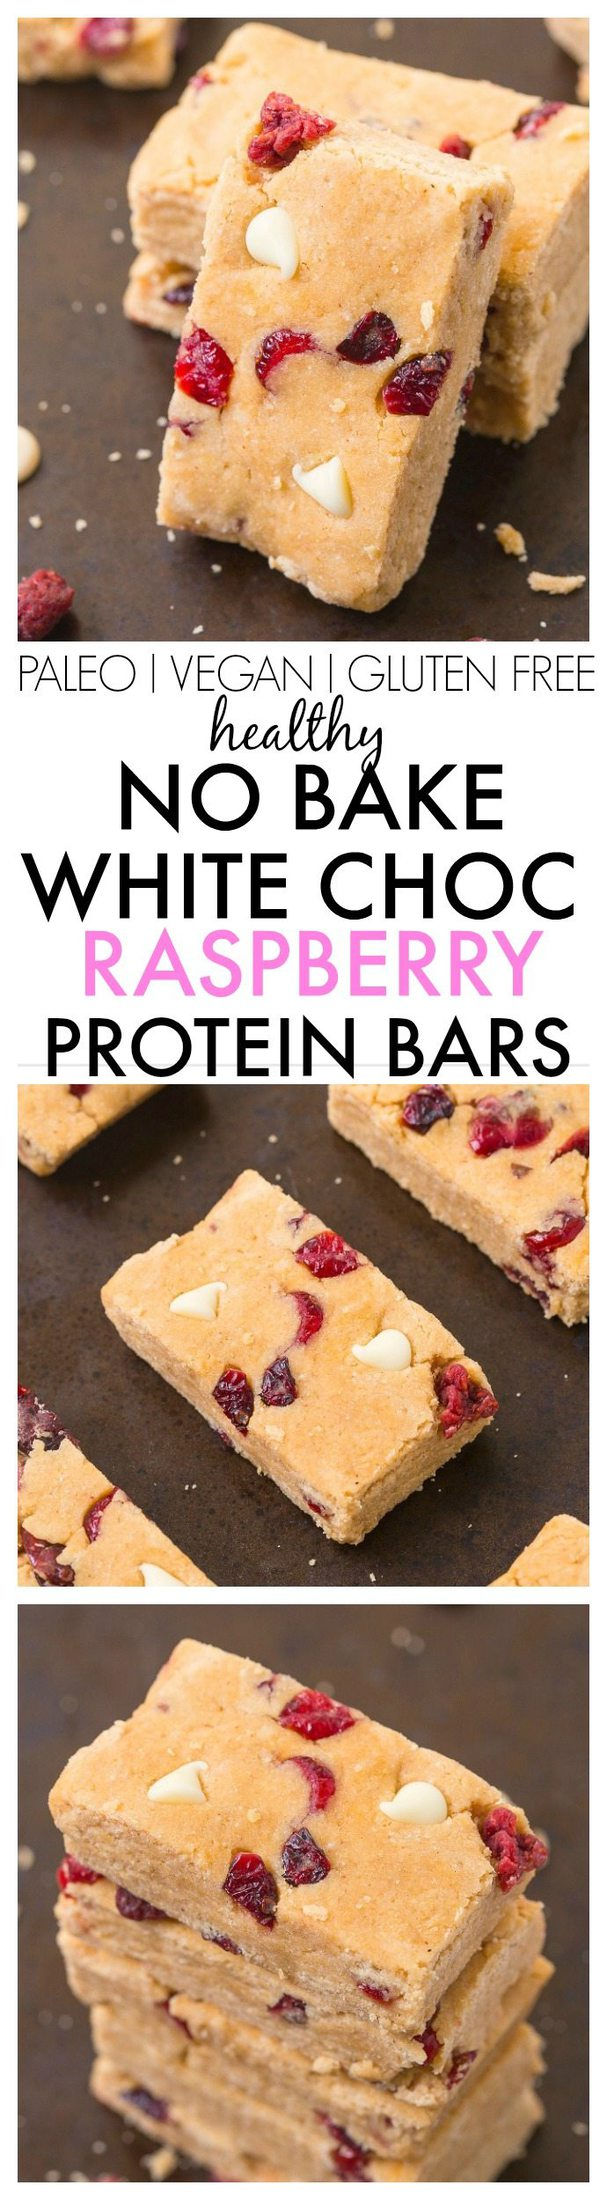 Healthy No Bake White Chocolate Raspberry Protein Bars- Easy, delicious and so much healthier than store bought- These taste like dessert bars! {vegan, gluten free, paleo recipe}- thebigmansworld.com